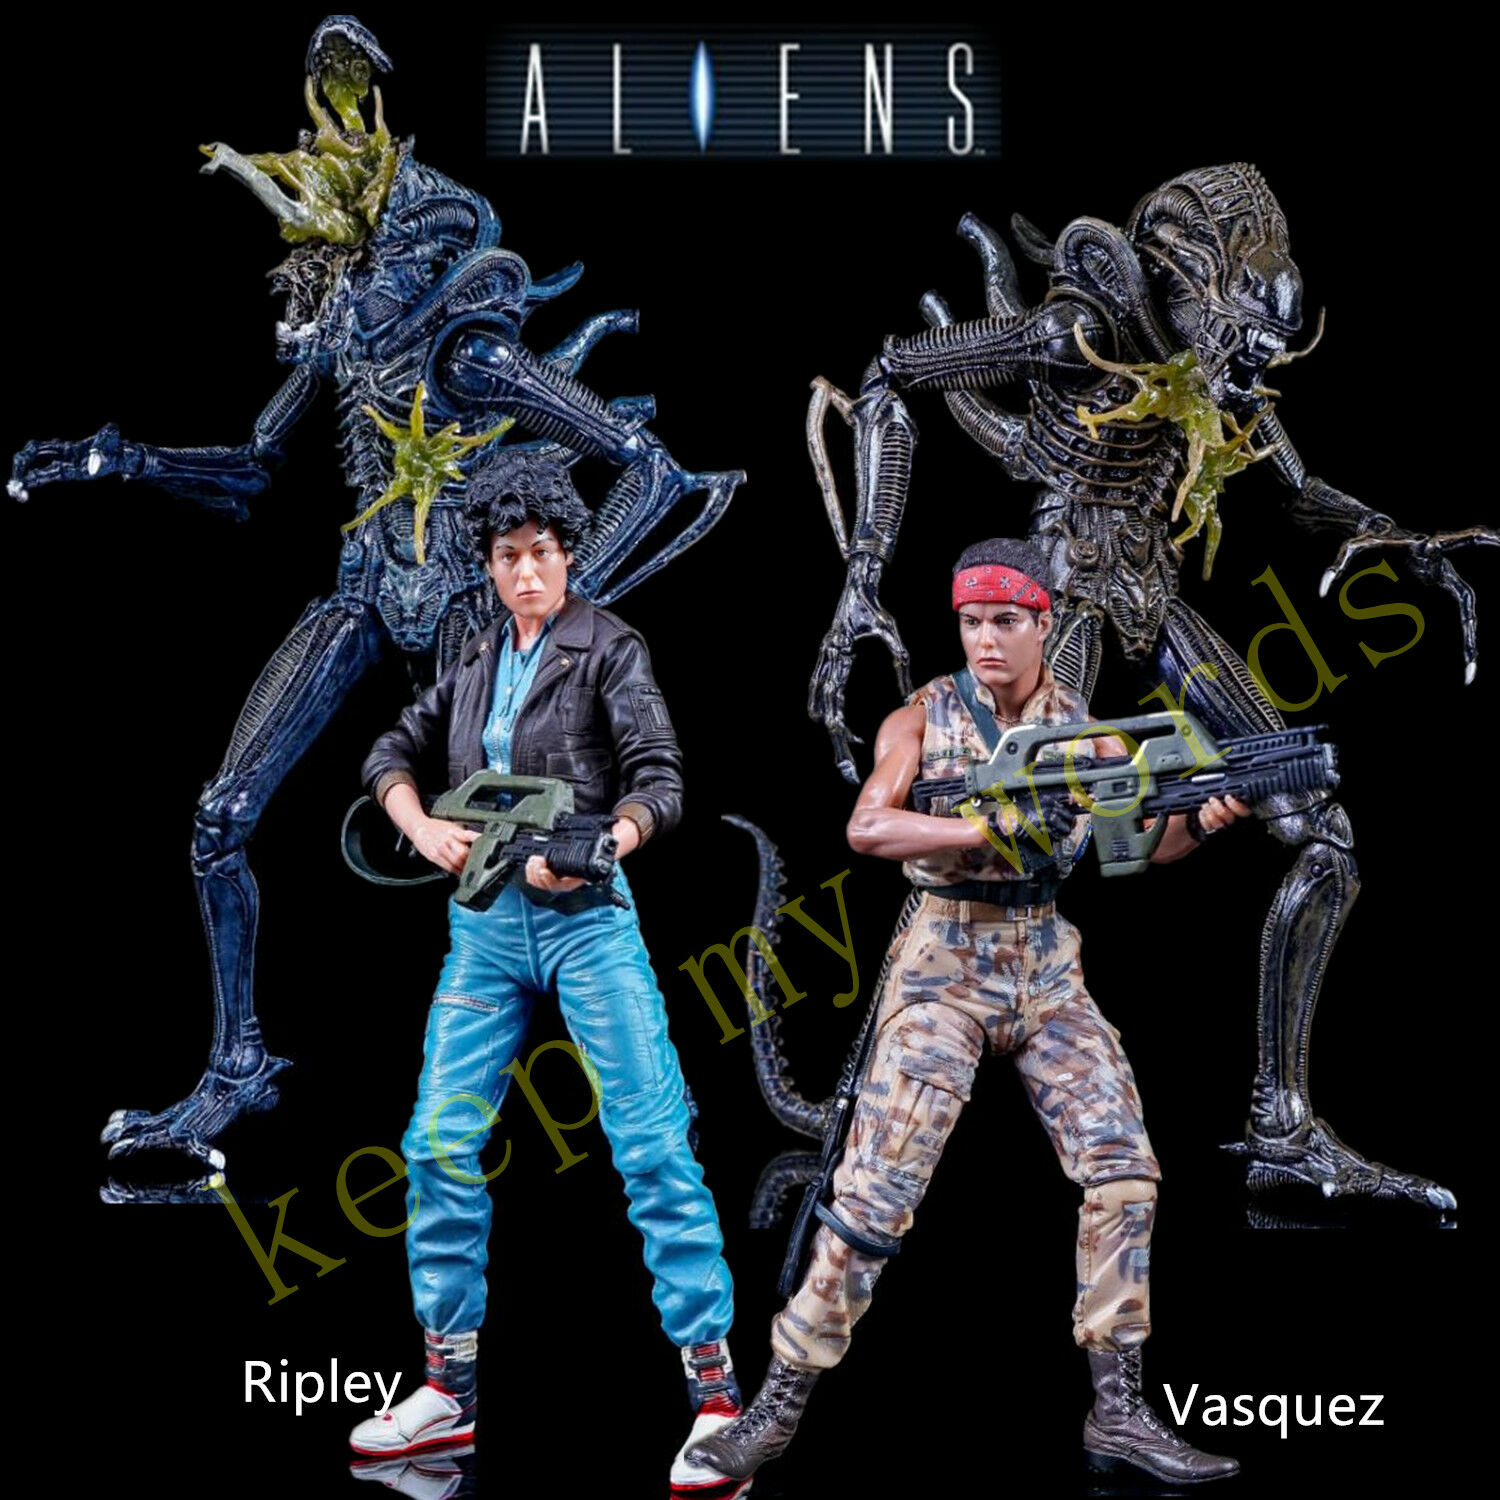 NECA 7  ALIENS 2 movie SERIES 12 PVC ACTION FIGURE Ripley Vasquez Xenomorph New